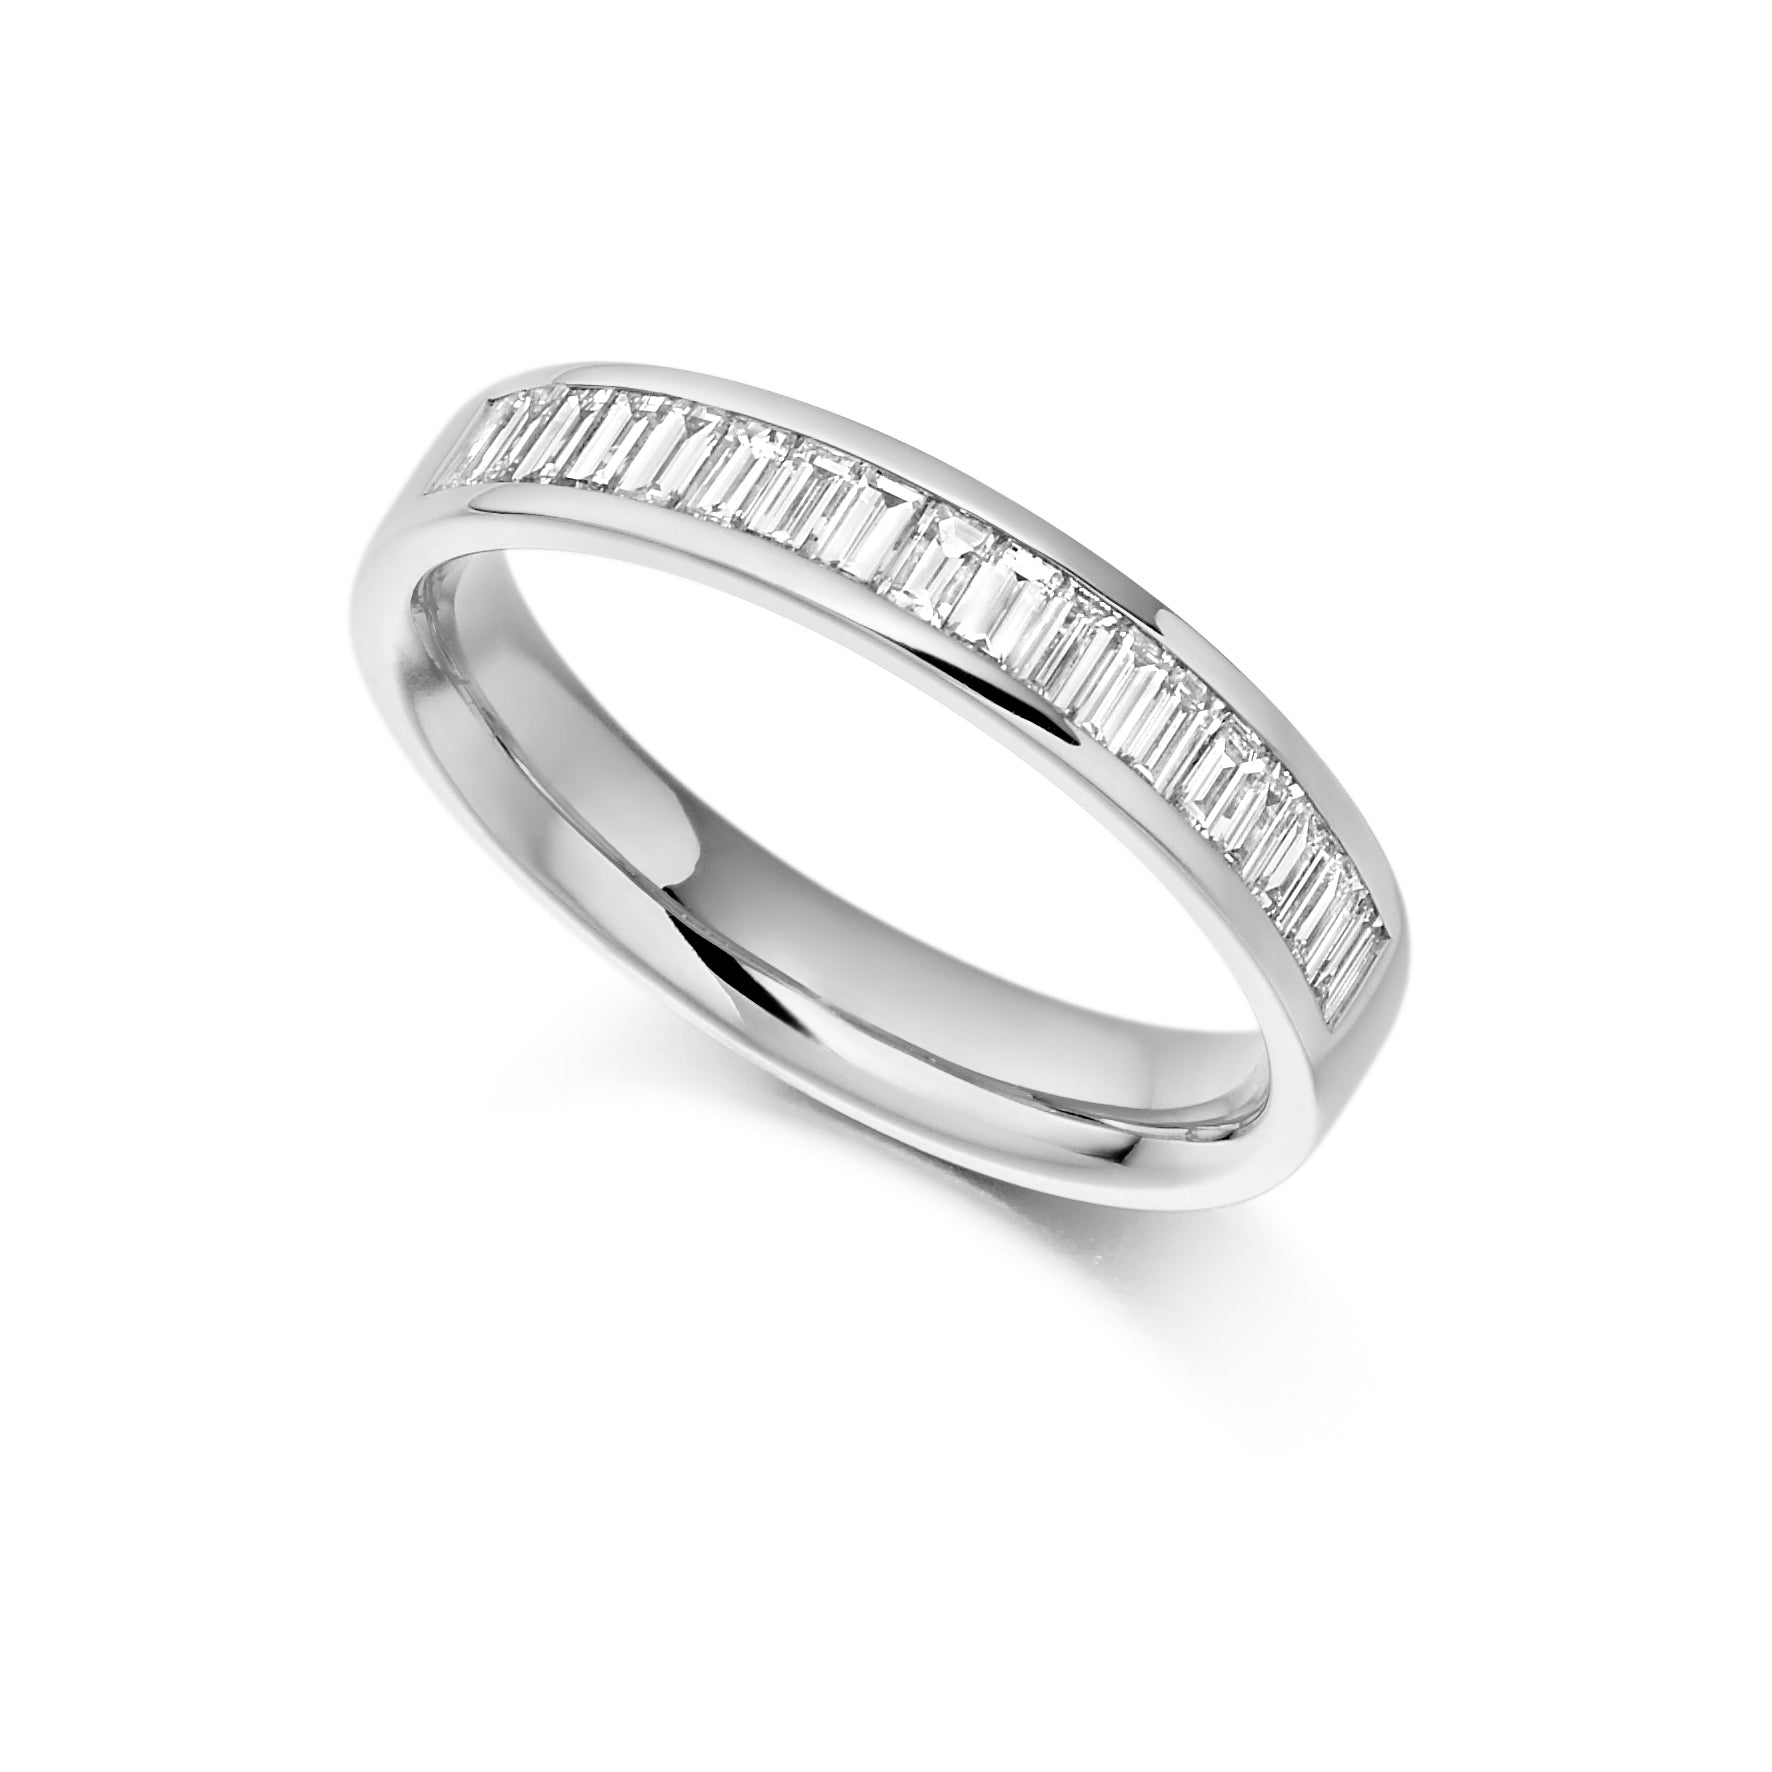 18ct White Gold 0.56ct Baguette Cut Diamonds Channel Set Vintage Wedding Ring